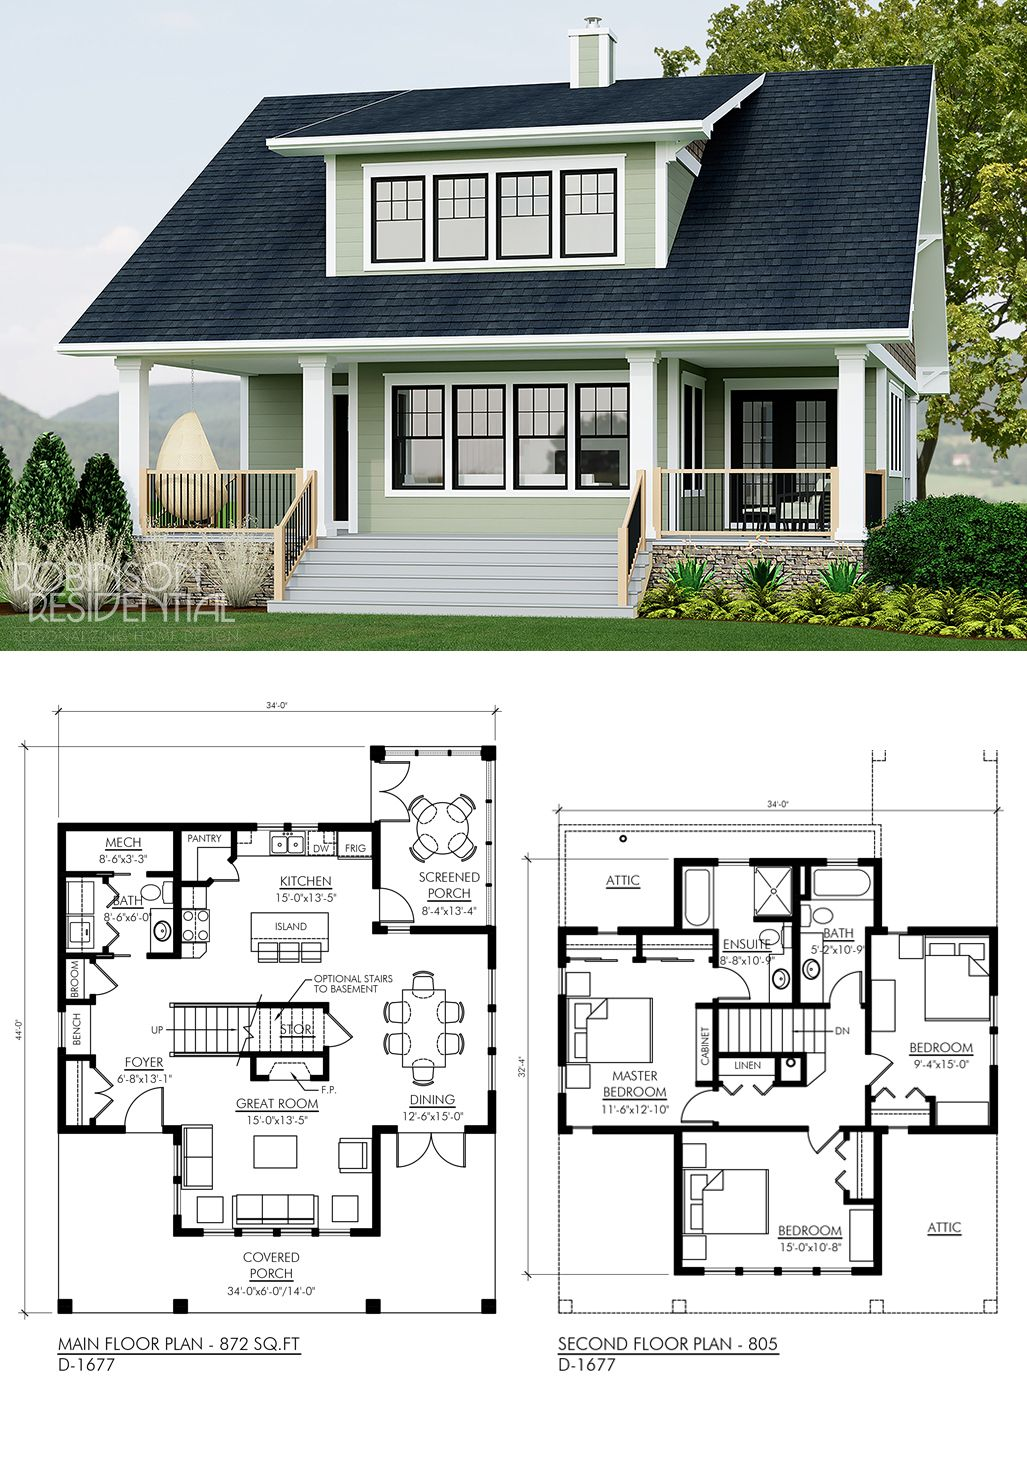 Craftsman D 1677 Robinson Plans Craftsman House Plans Sims House Plans Porch House Plans